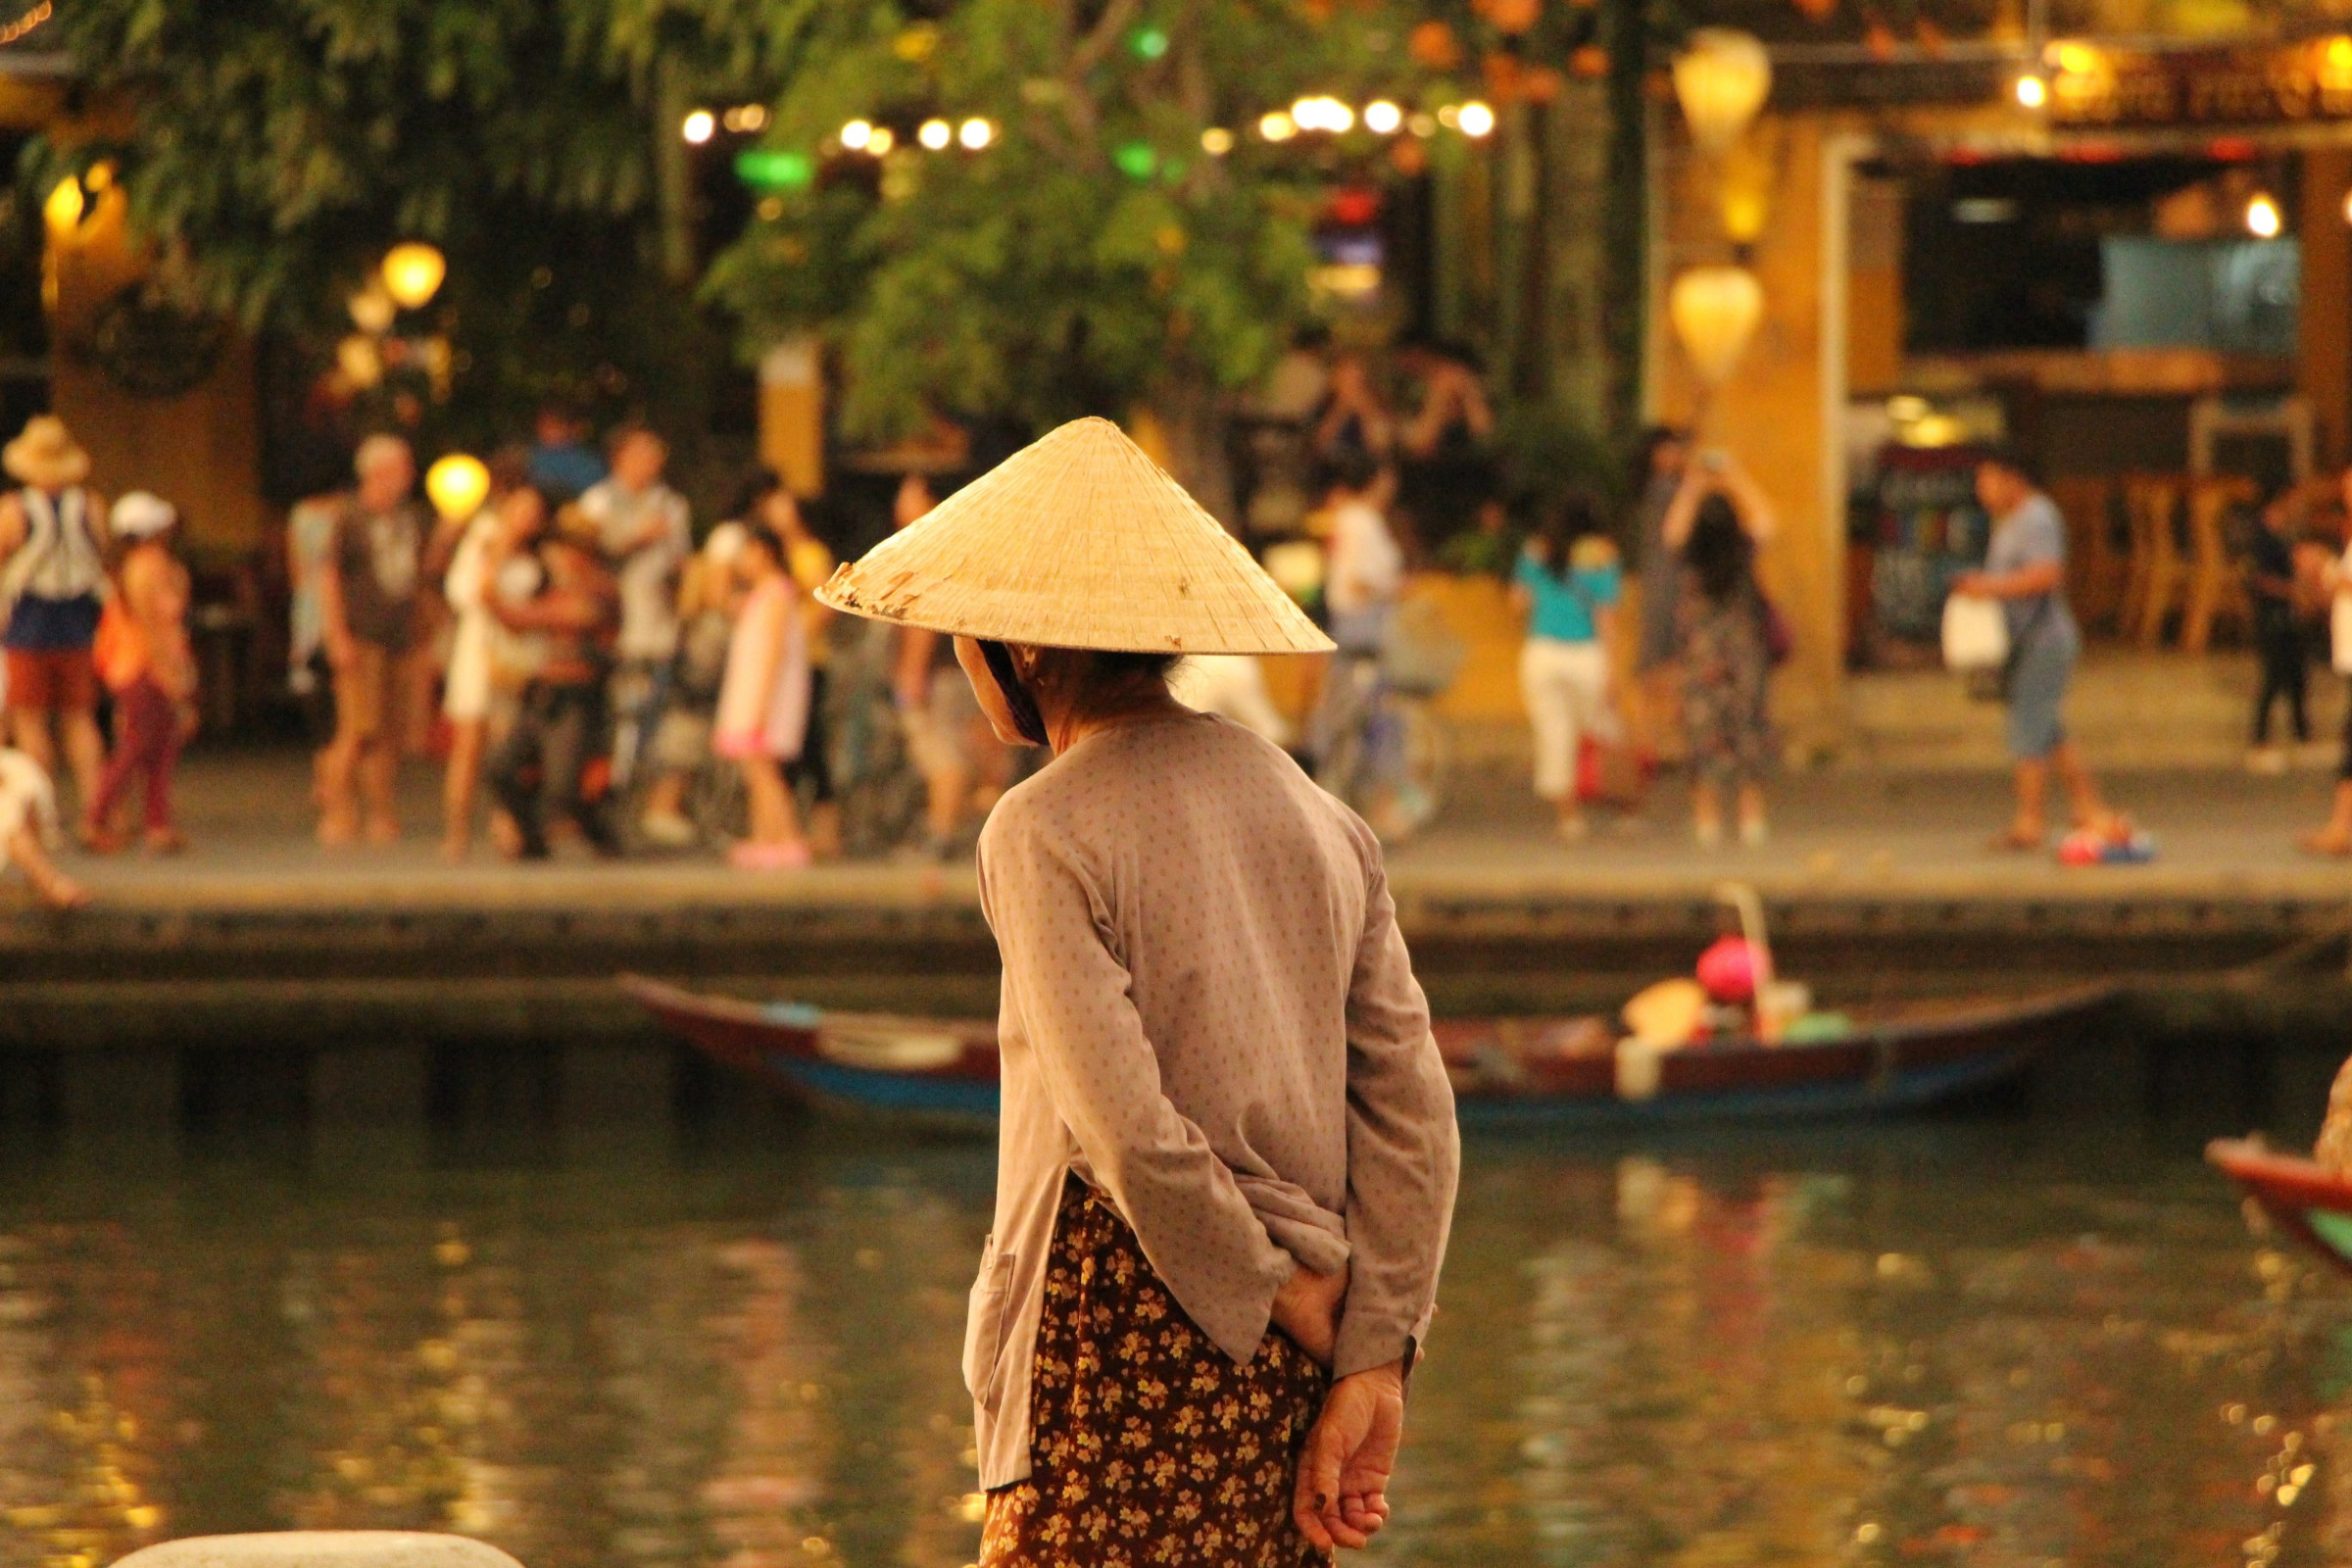 viet - Why Vietnam Is A Great Digital Nomad Destination In 2020